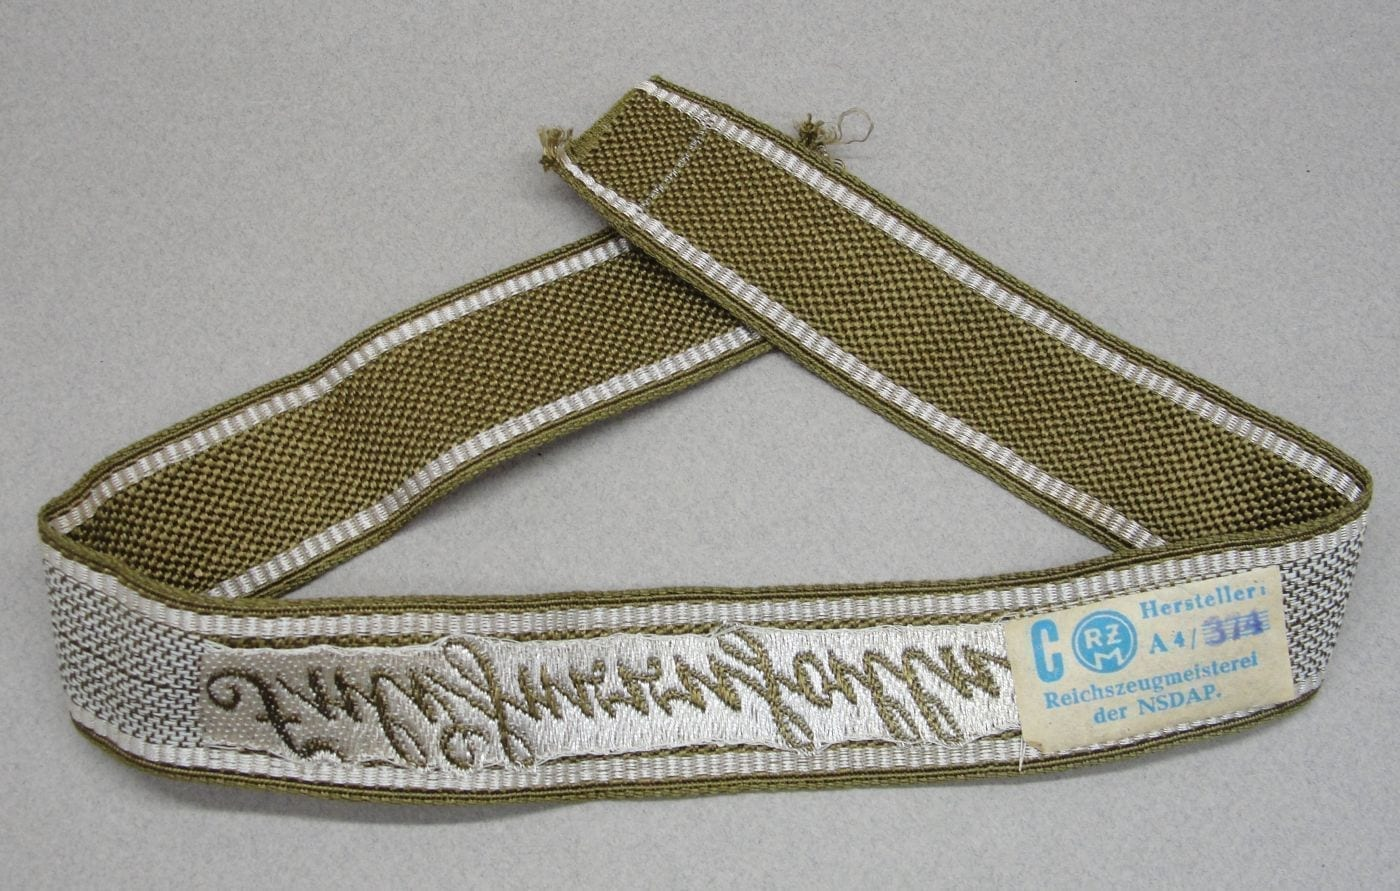 Elite SA Honor and Panzer Grenadier Division Felderrnalle Cufftitle with RZM Tag - Mint - Choice!